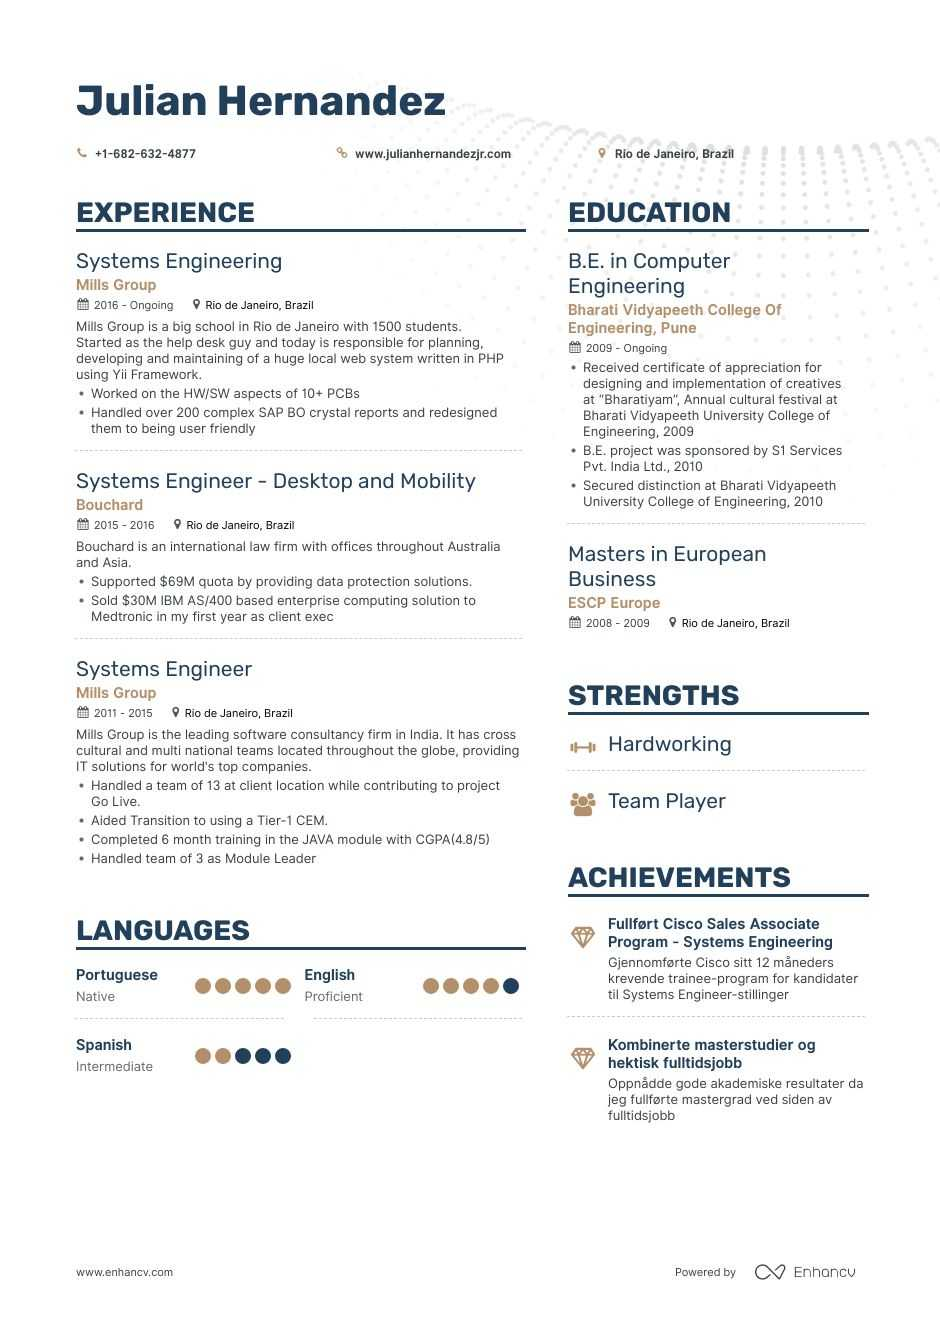 Systems Engineer Resume Examples Pro Tips Featured Enhancv